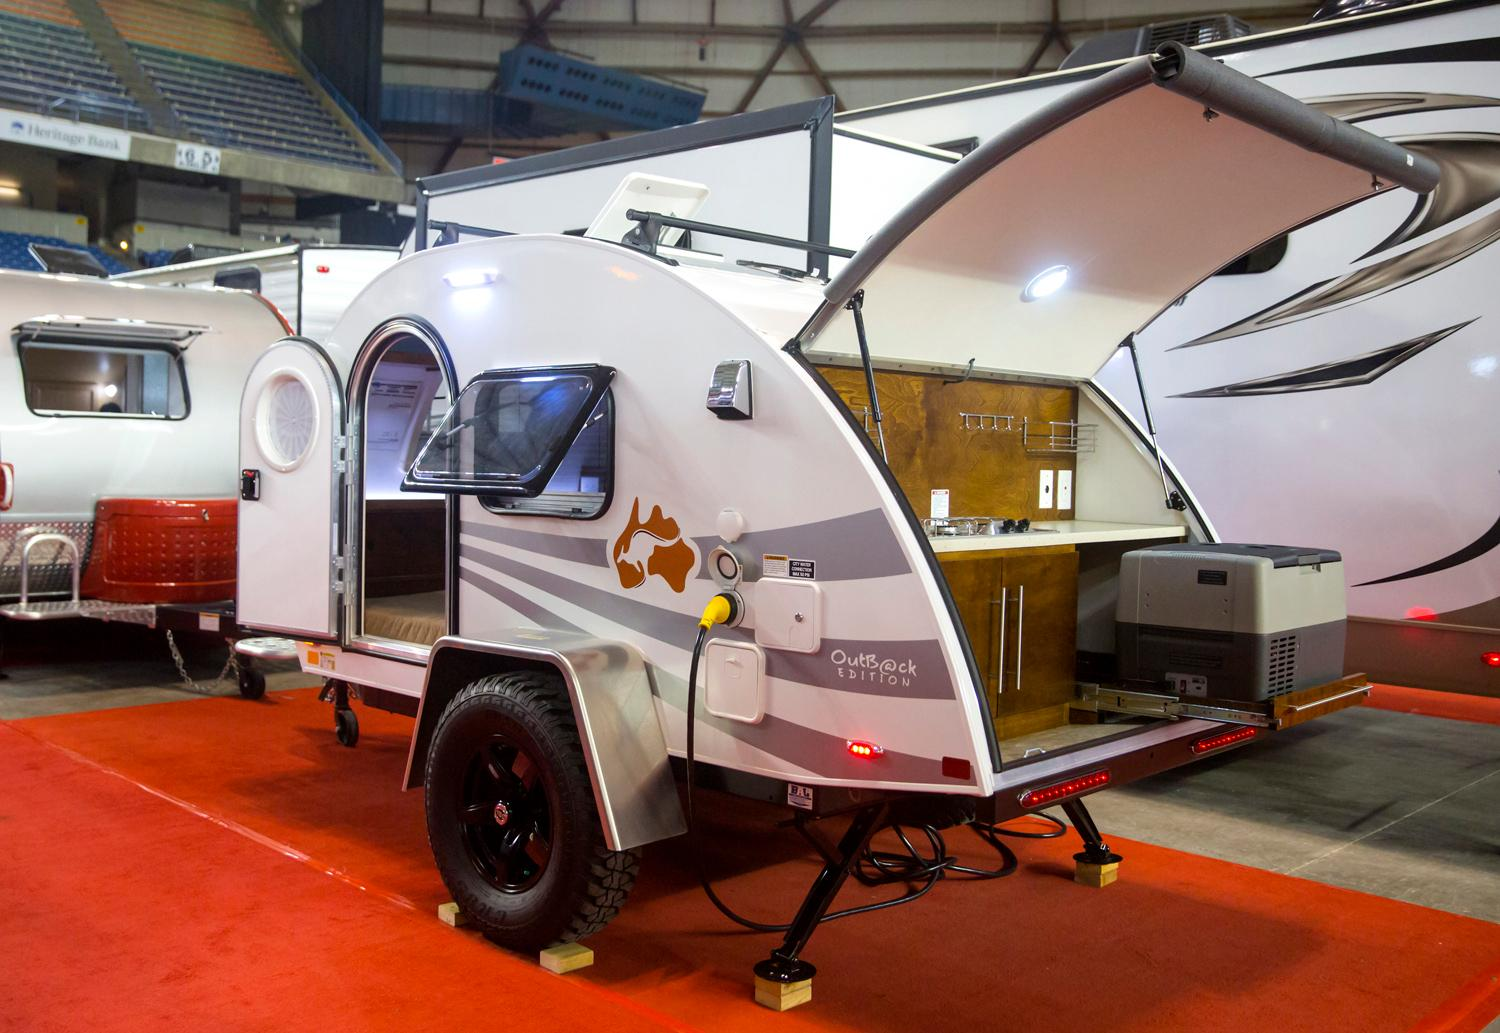 The Tacoma RV Show is happening this weekend (Jan. 18-21) and something special caught our eye when we were visiting. All the TEENY TINY RVs that are available for purchase! We decided to make our way around the giant show, seeking out the cutest, tiniest mini RVs to chronicle. Click through and check them out, which one would you buy? Best of all, all are under $25,00 (cheap for RV standards)! (Image: Sy Bean / Seattle Refined)